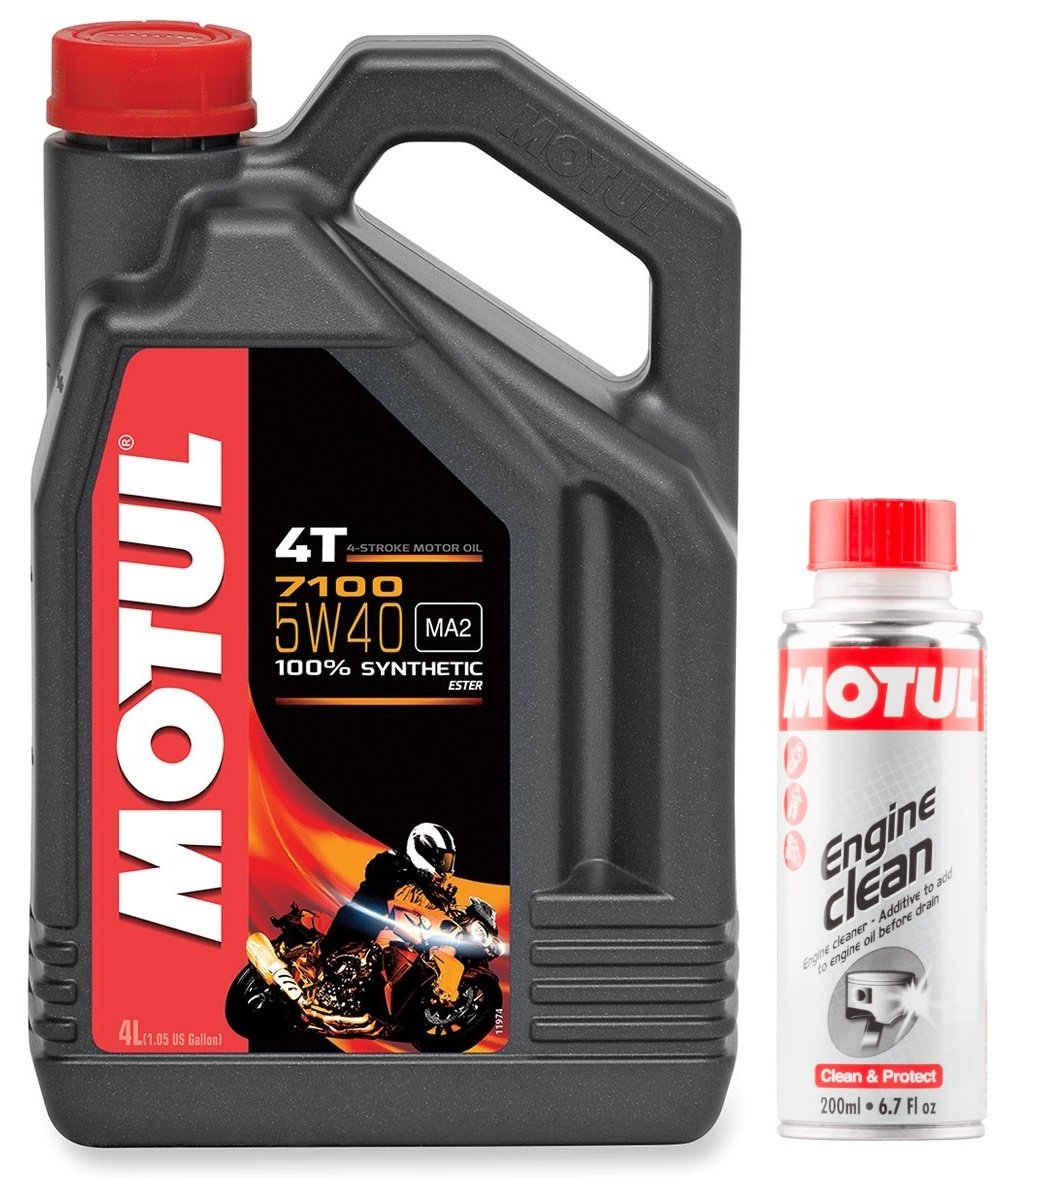 MOTUL Duo Aceite Moto 7100 4T 5 W-40, 4 L + Engine Clean 200 ml: Amazon.es: Coche y moto